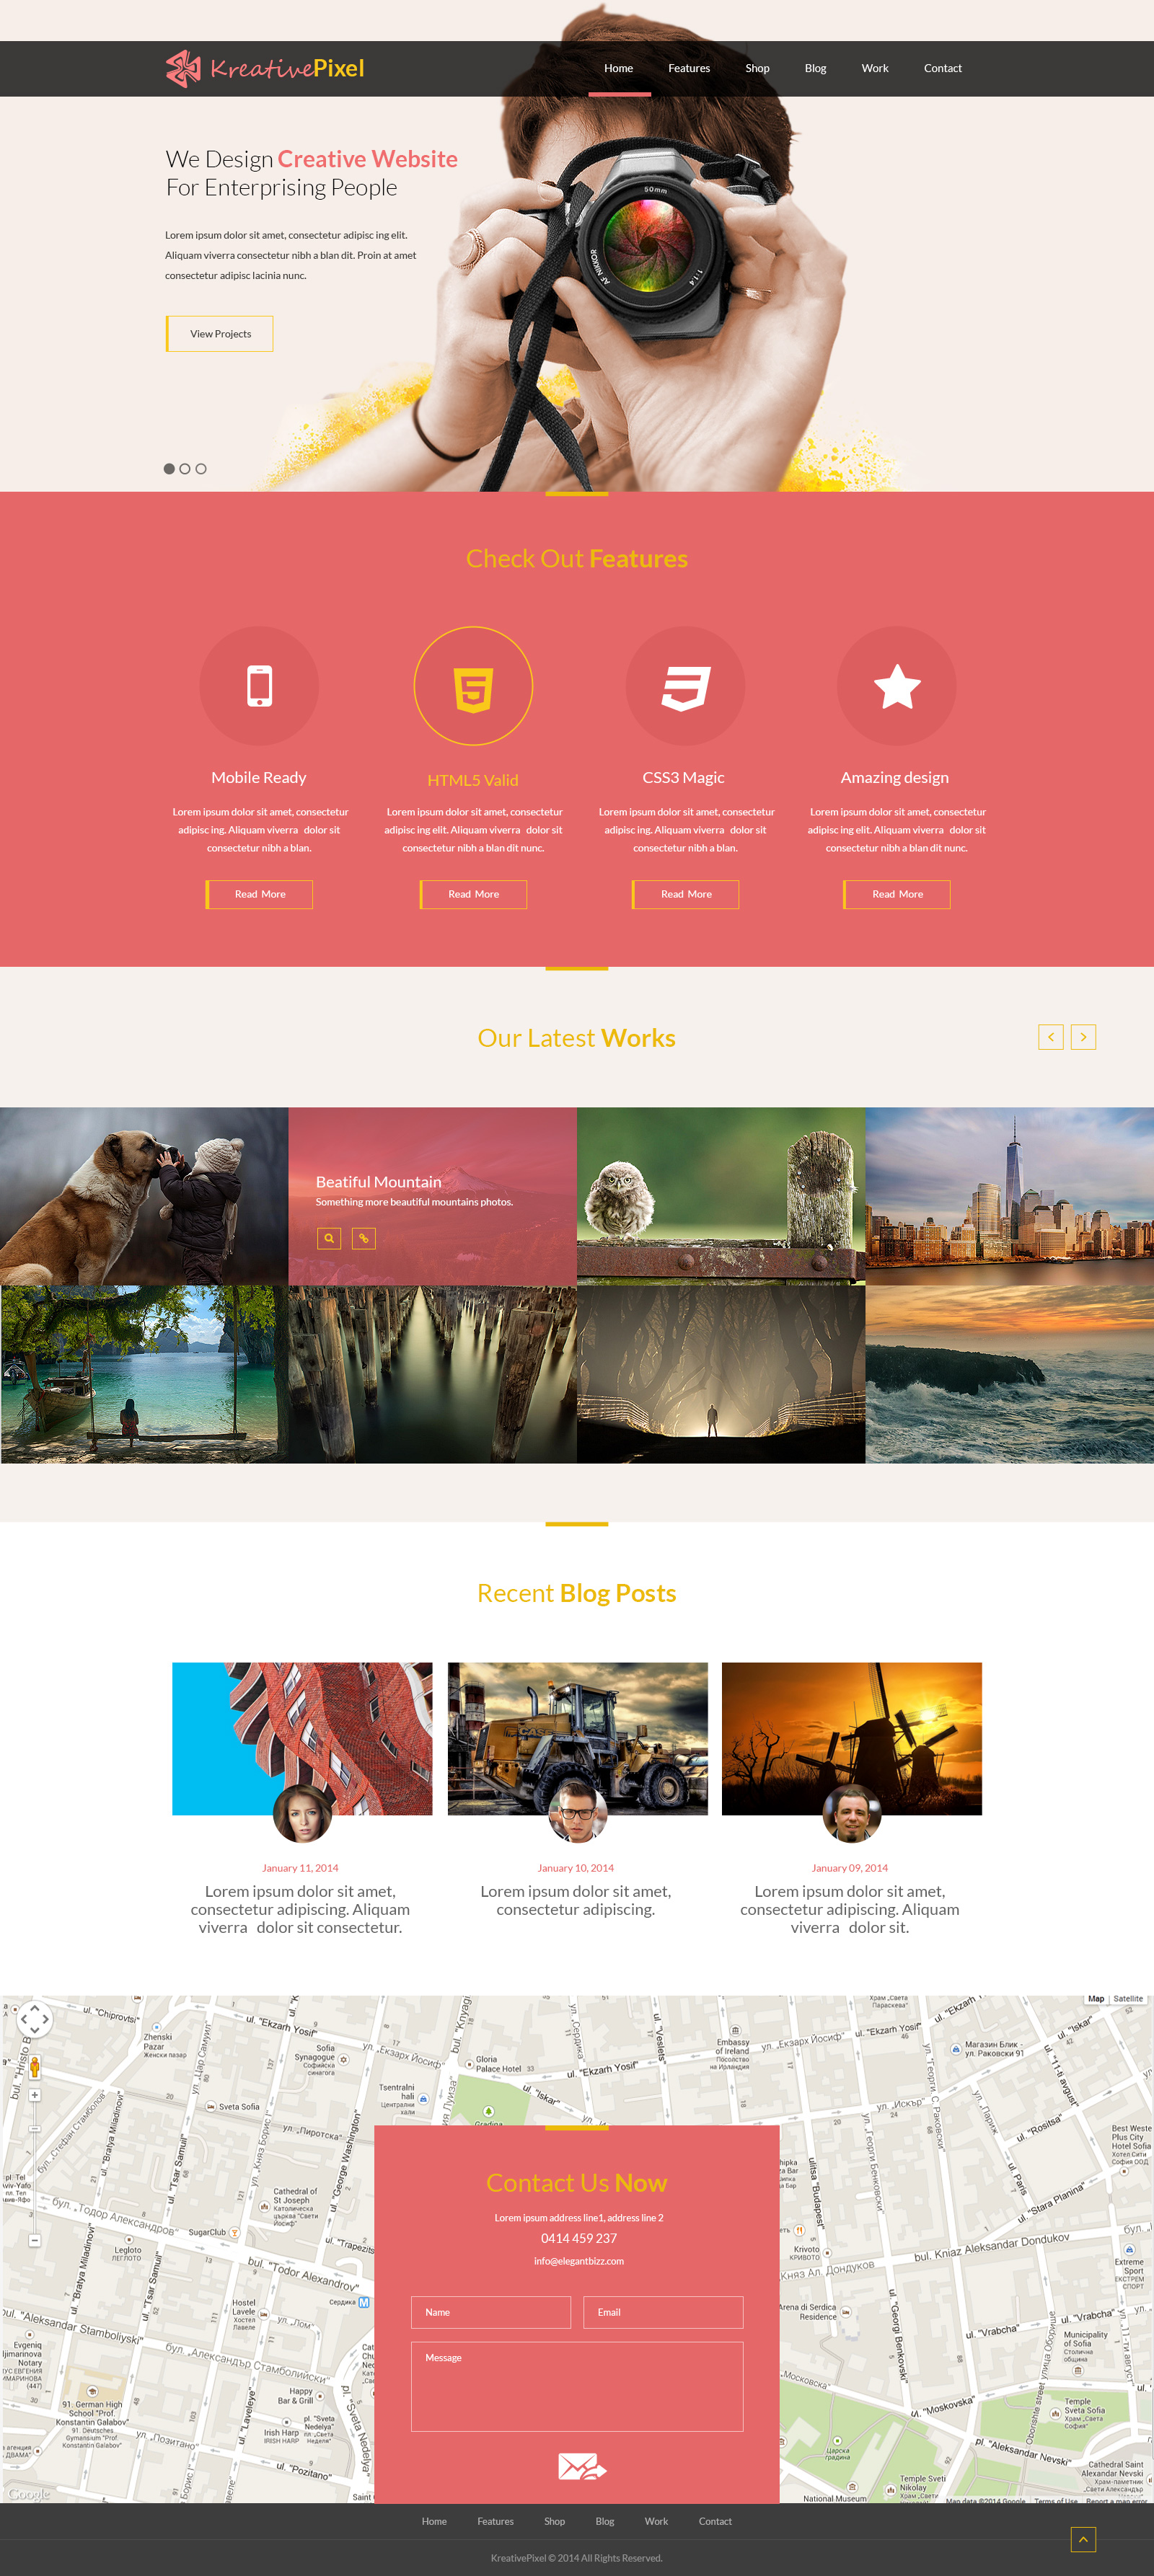 free creative website design template psd at freepsdcc